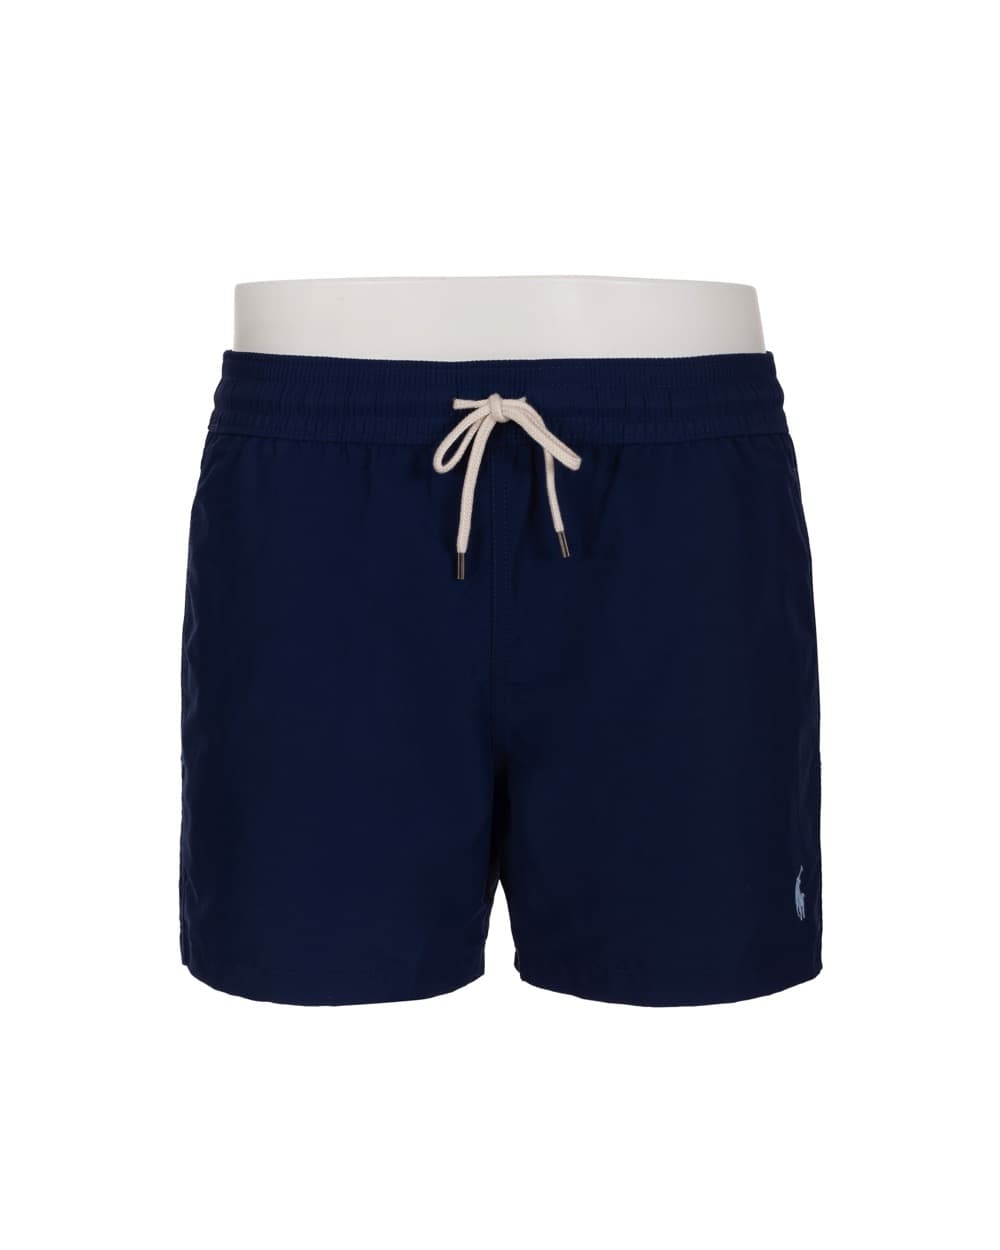 uk availability 11c56 2cdd6 Boxer Mare Uomo Polo Ralph Lauren Holiday Navy